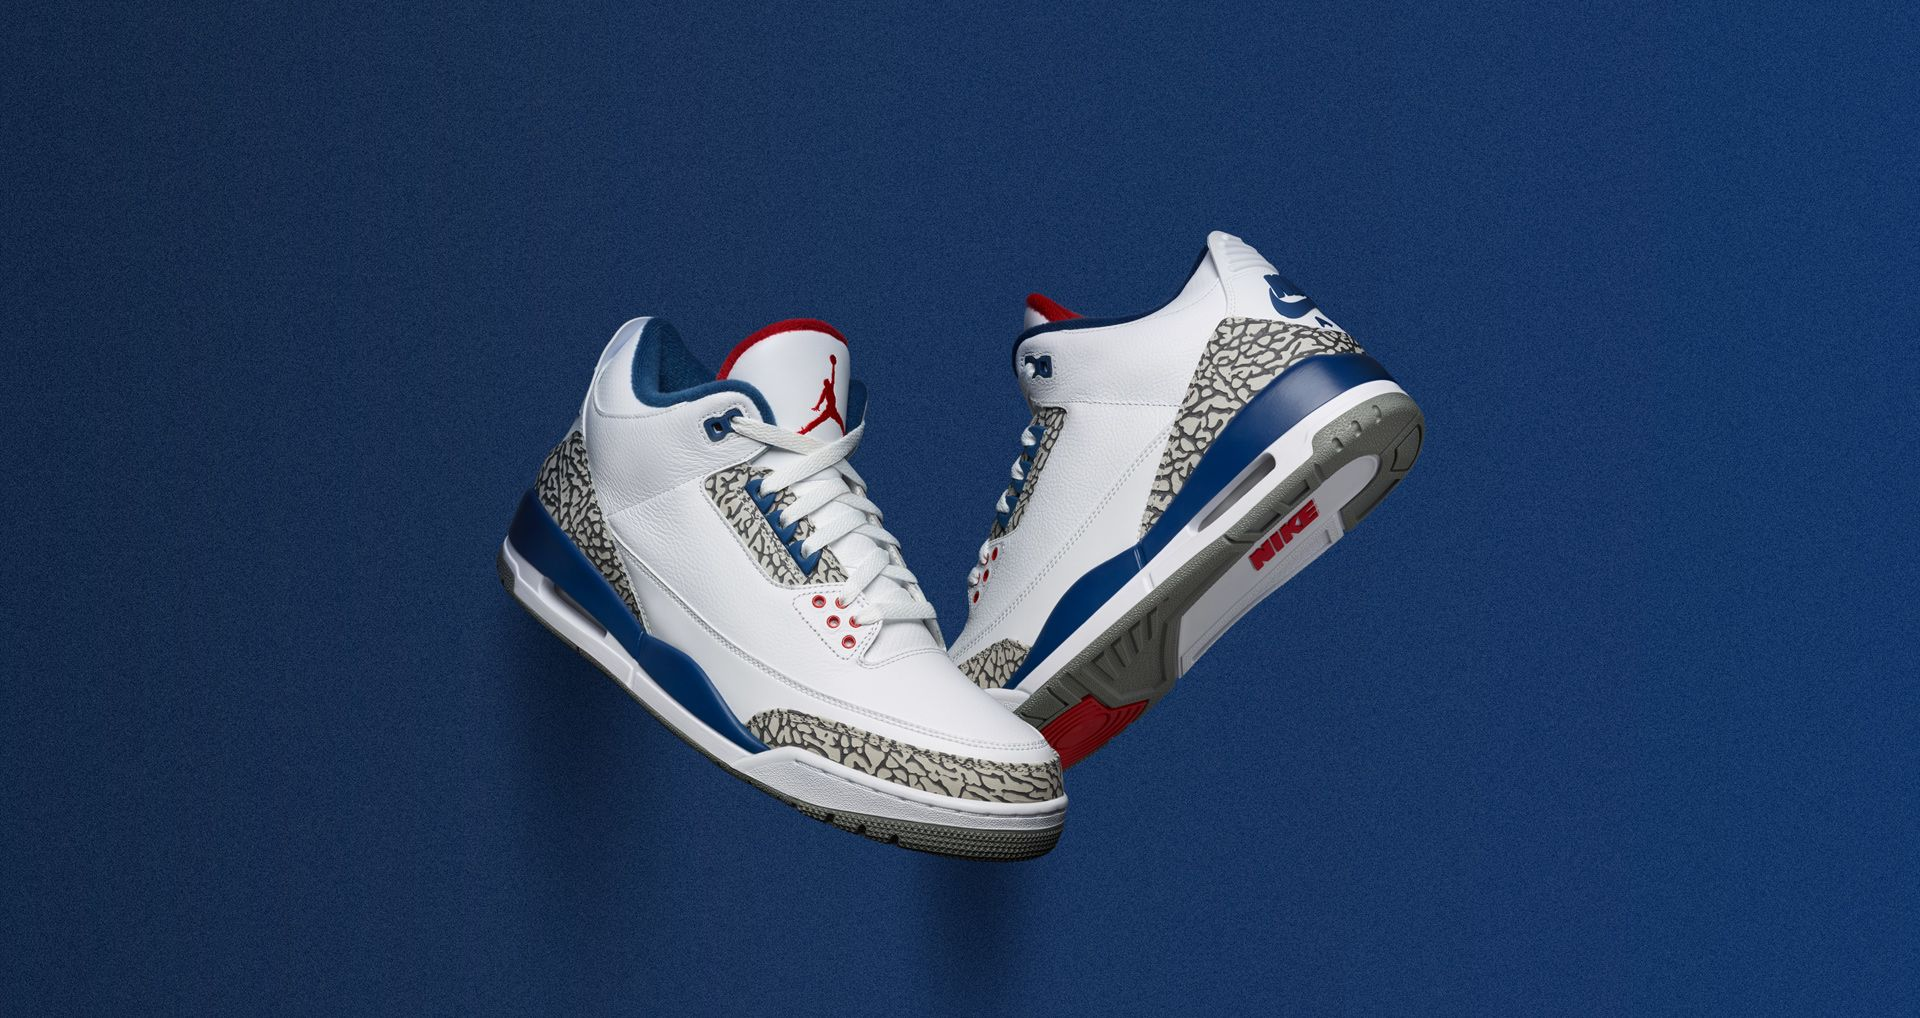 on sale f9459 2d15e Air Jordan 3 Retro OG 'White & Cement Grey & Blue'. Nike⁠+ SNKRS